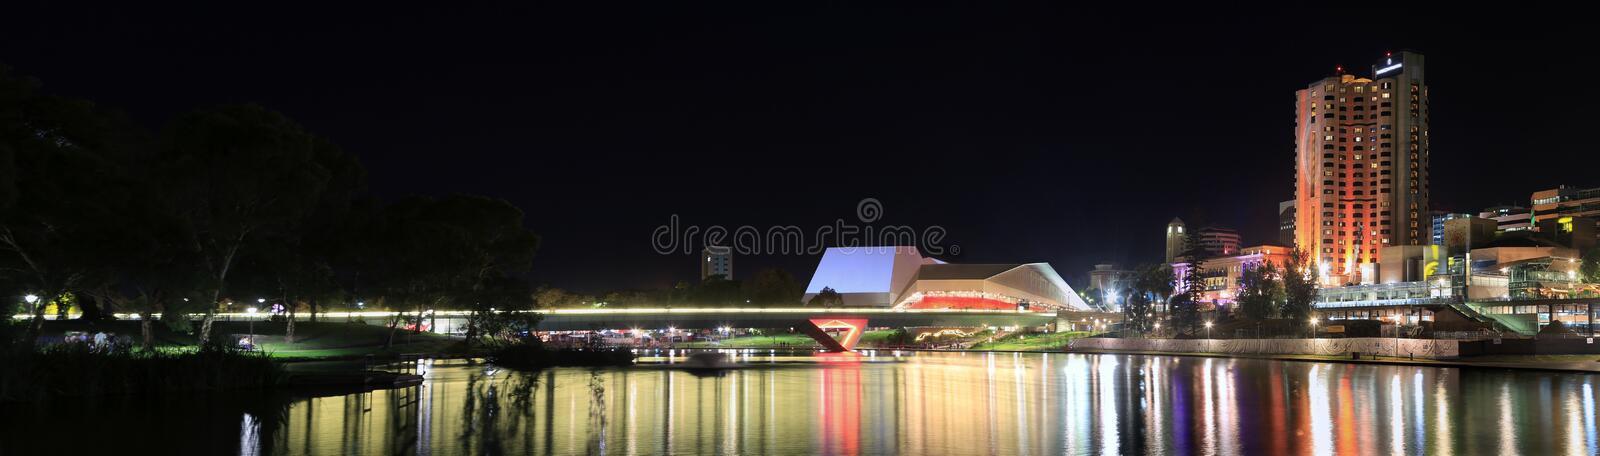 Adelaide Riverbank Precinct by night royalty free stock images